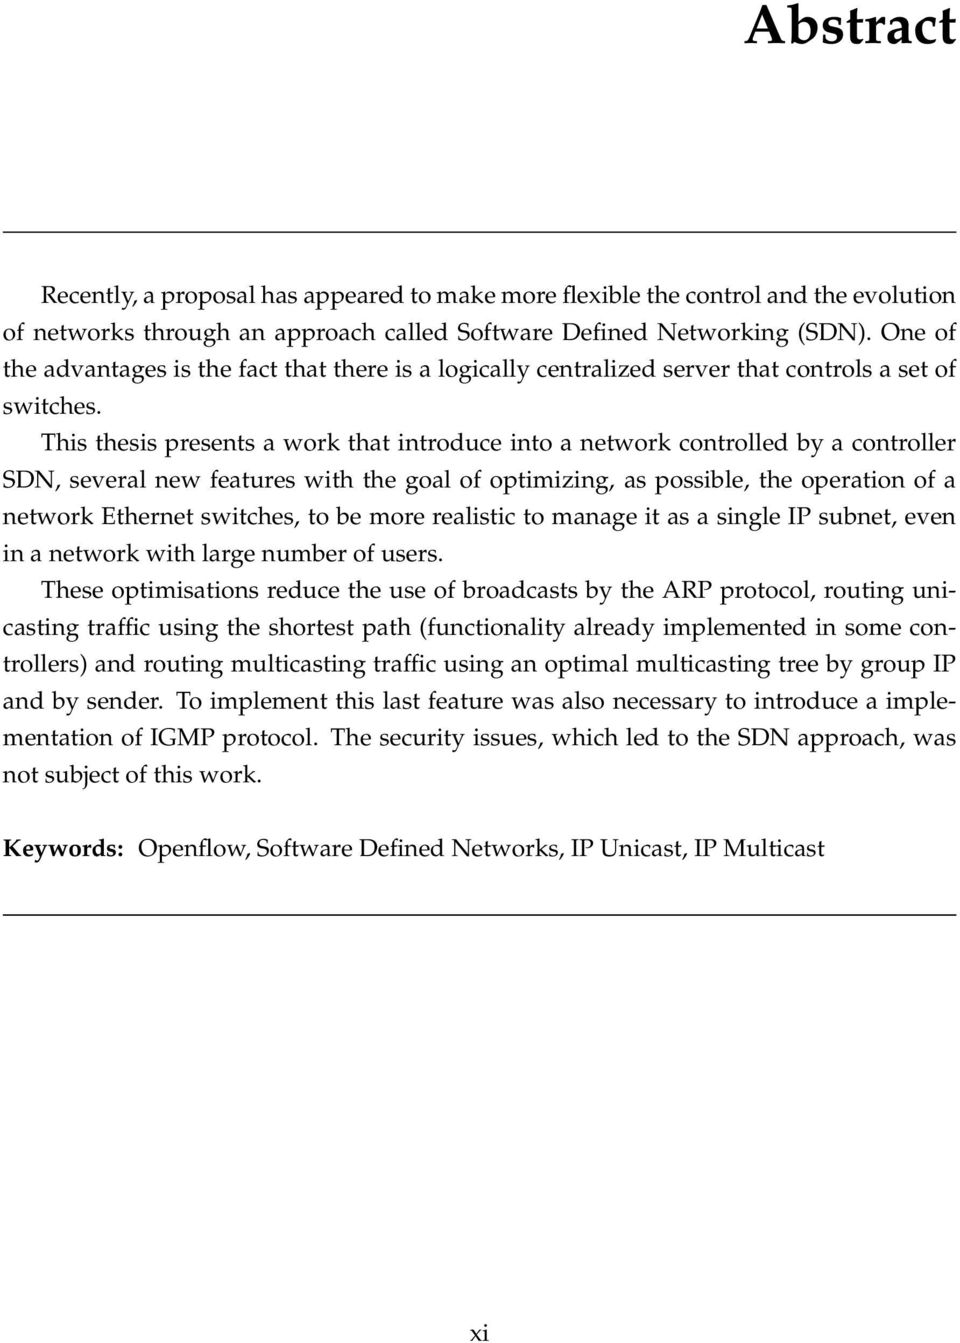 This thesis presents a work that introduce into a network controlled by a controller SDN, several new features with the goal of optimizing, as possible, the operation of a network Ethernet switches,